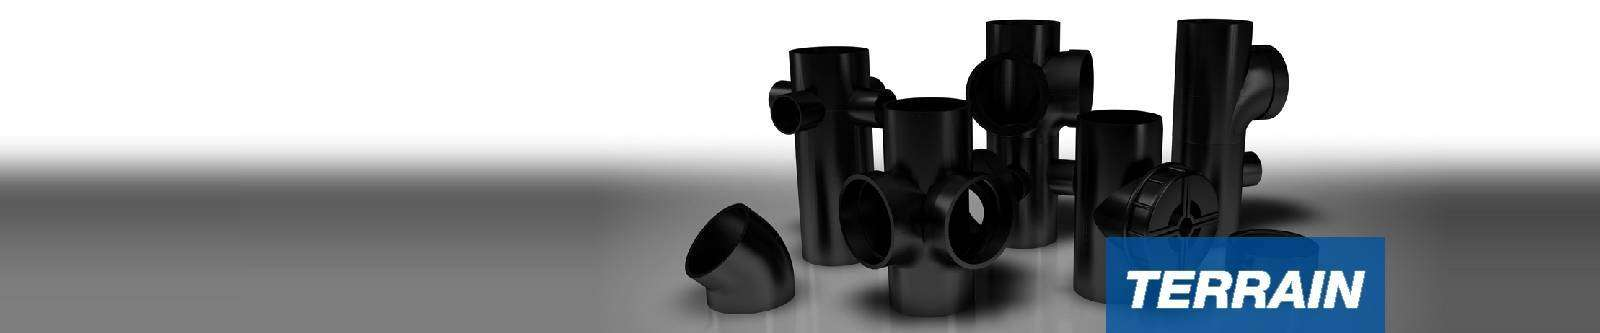 Terrain FUZE HDPE above ground soil and waste pipe drainage system for commercial buildings